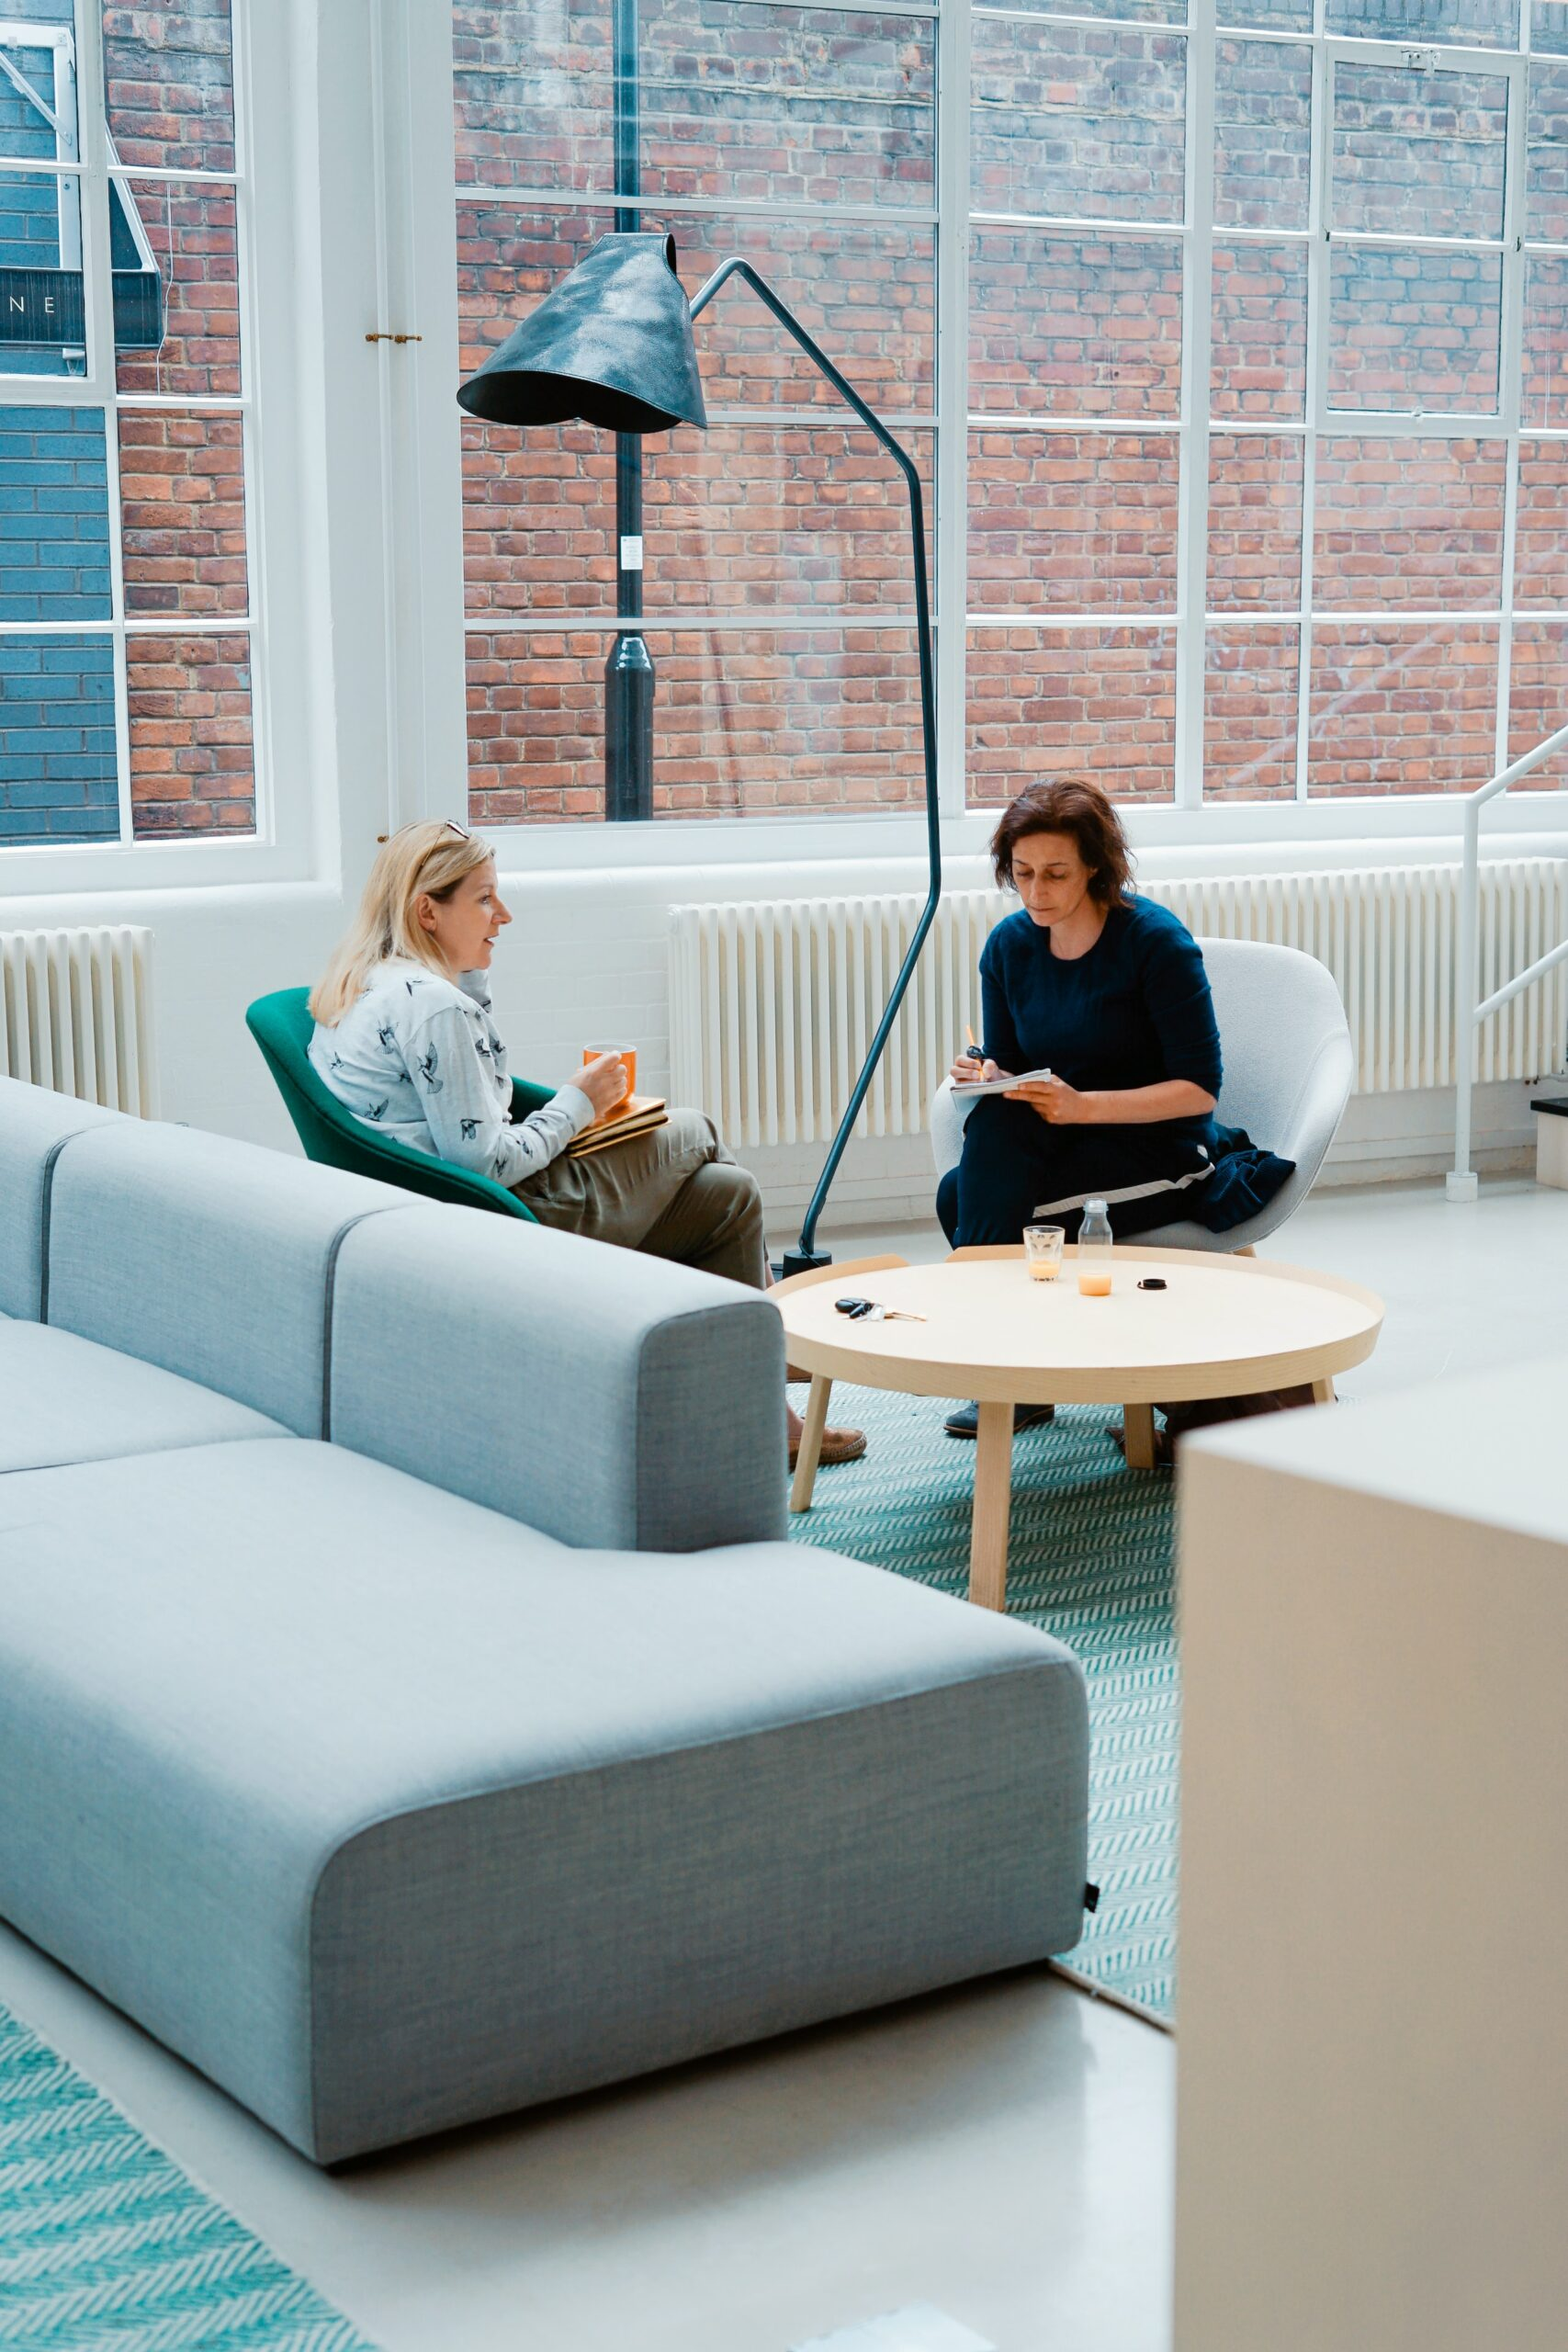 Two women in an office space having a discussion.